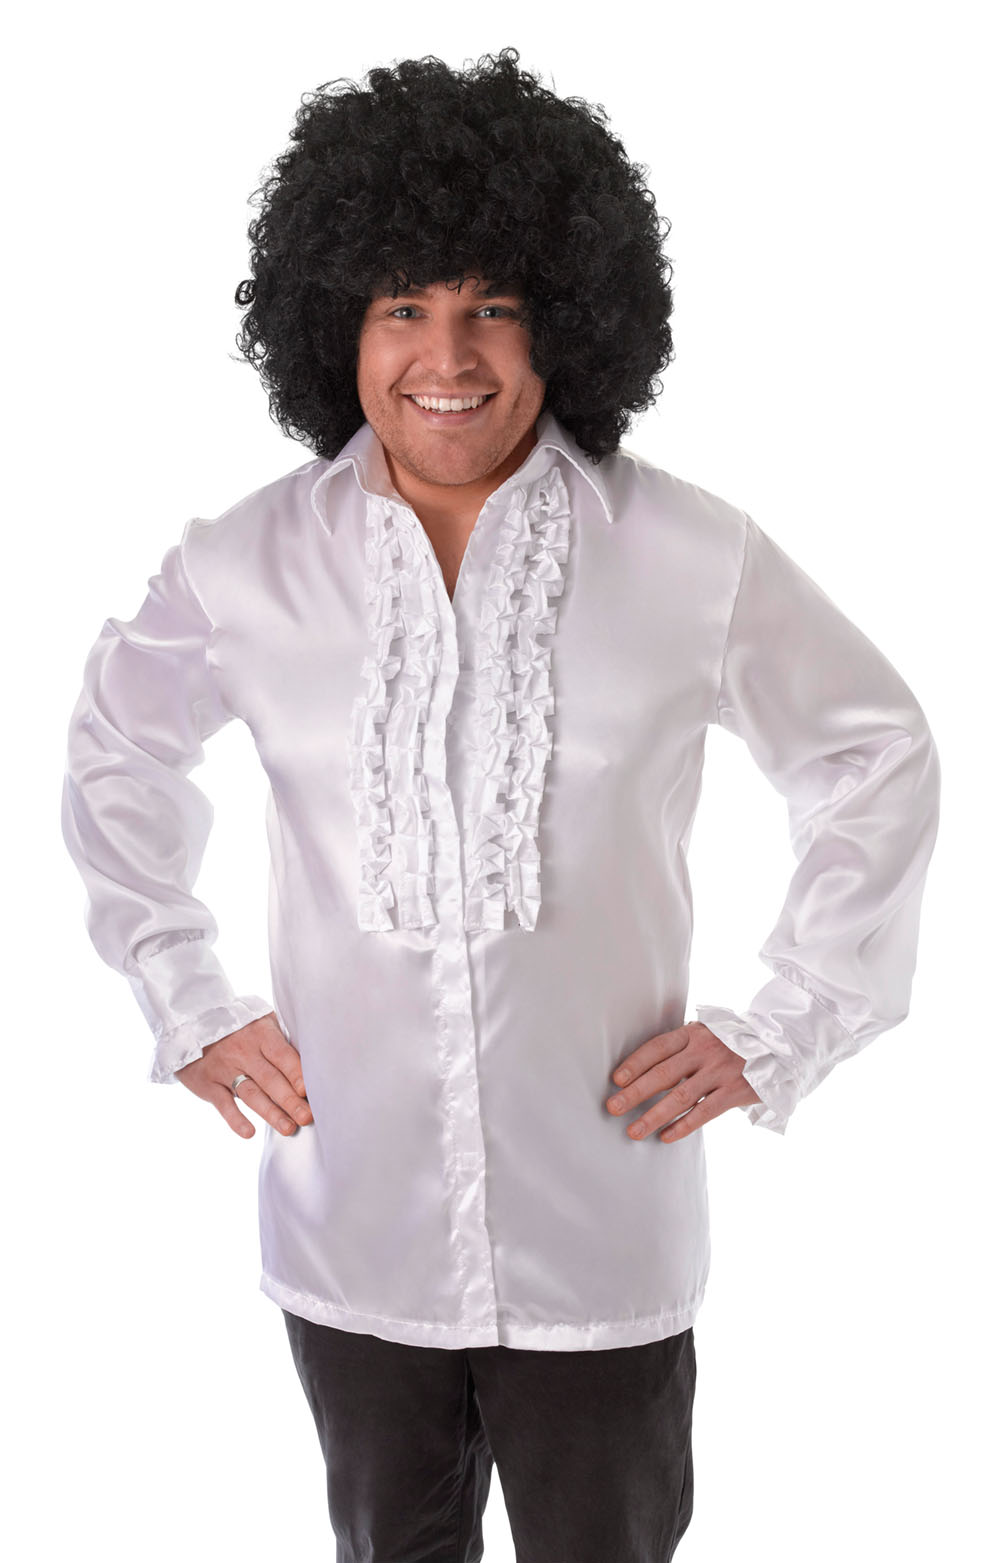 Mens White Ruffle Shirt 1970S Fancy Dress Costume Austin Powers Groovy Outfit